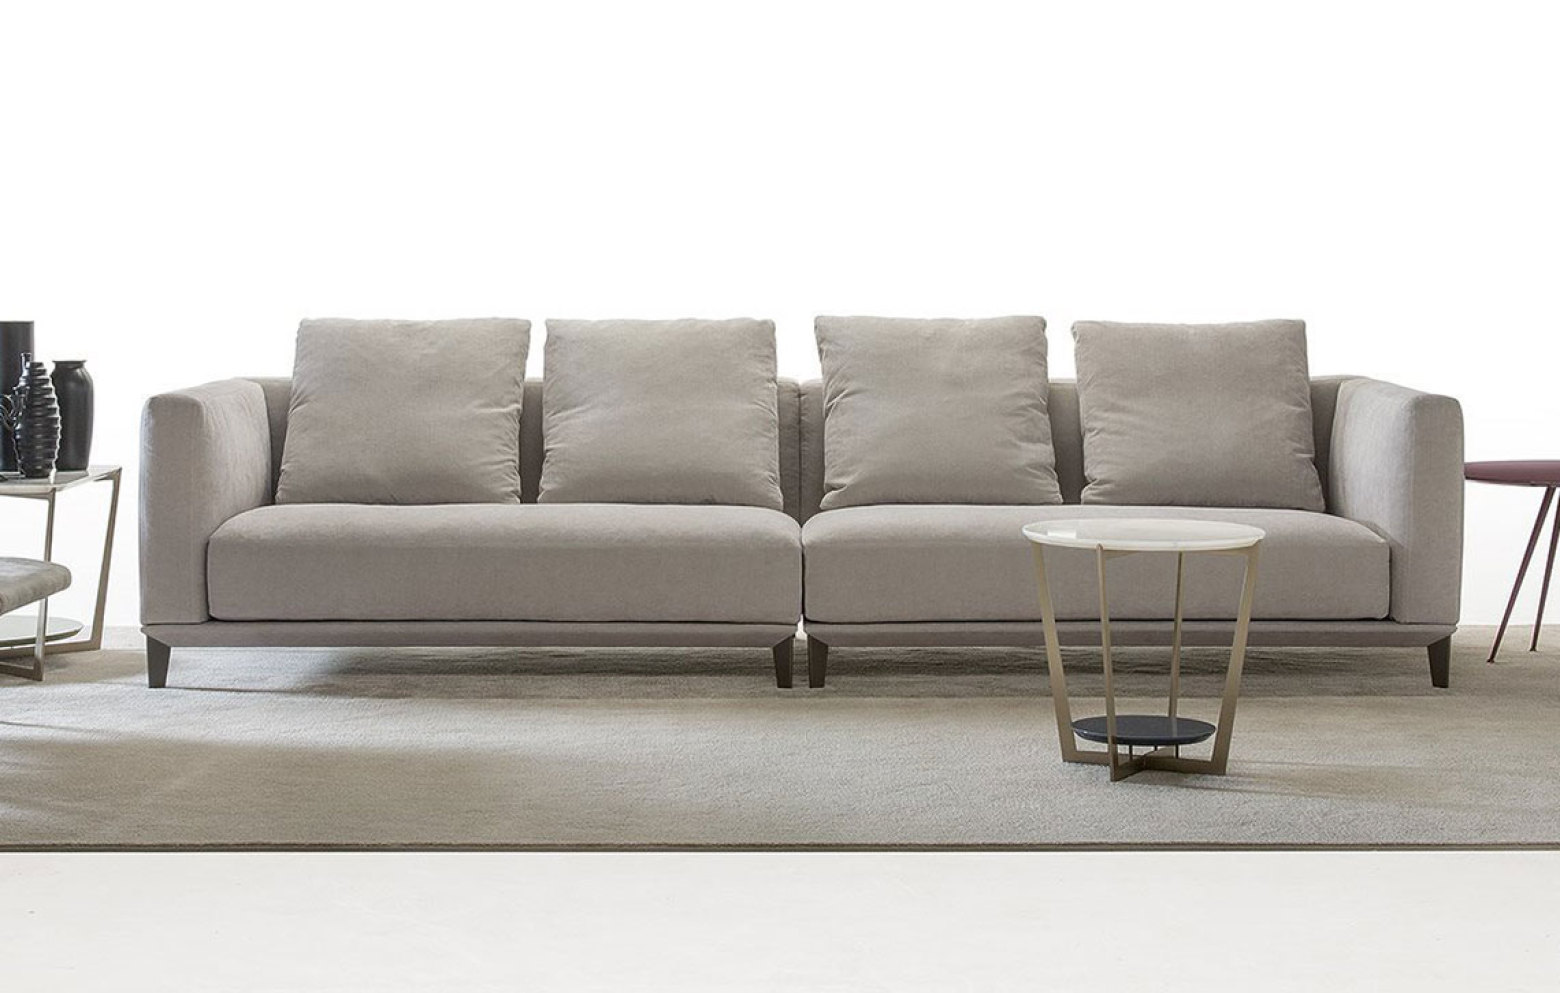 Kika Big Sofa Brostuhl Sedus Finest Affordable Awesome Large Size Of